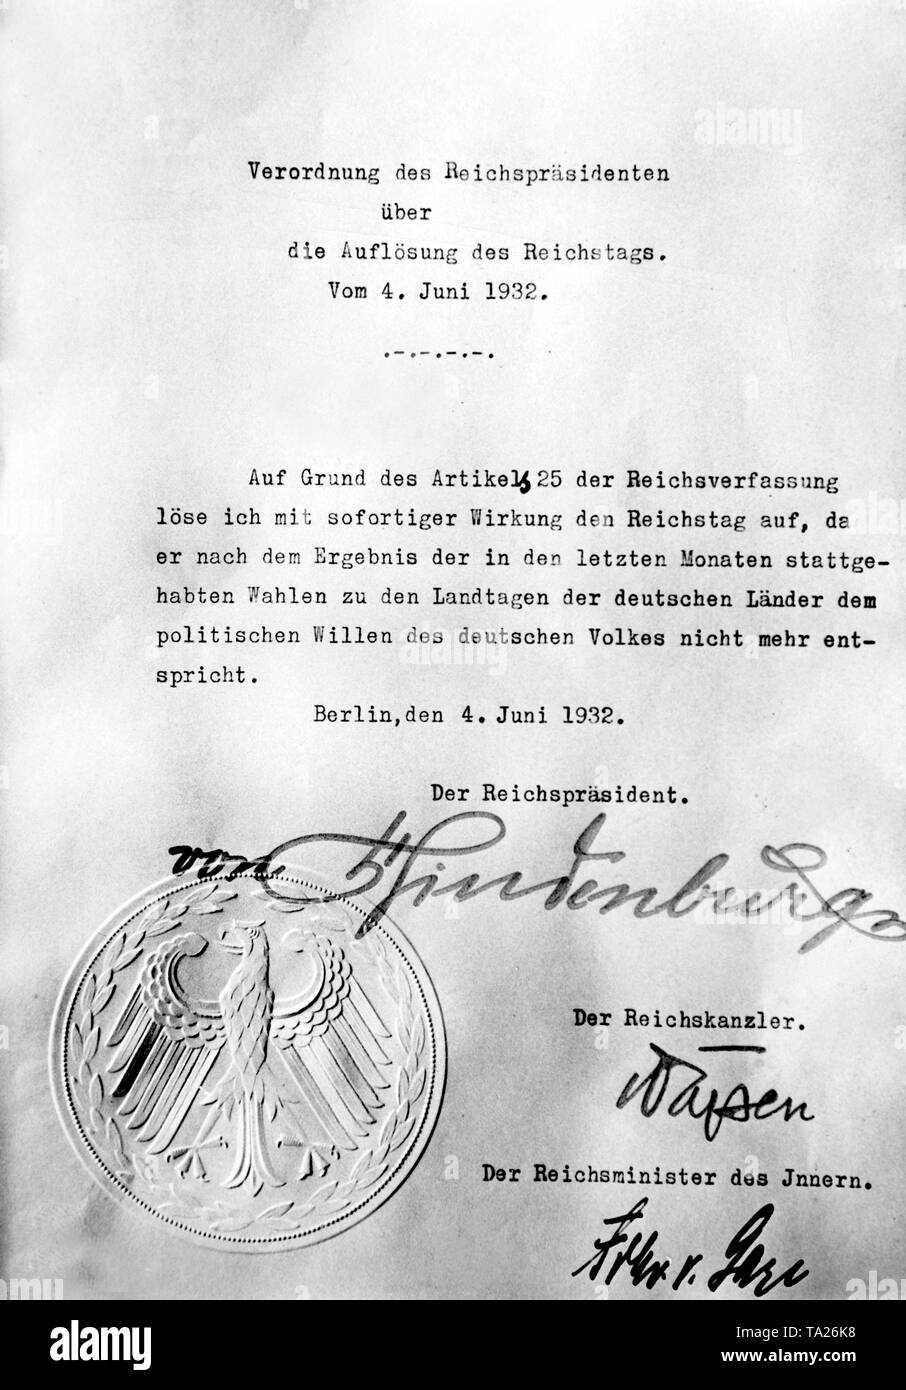 At the request of Chancellor von Papen, President Paul von Hindenburg signed a decree on the dissolution of the Reichstag. - Stock Image